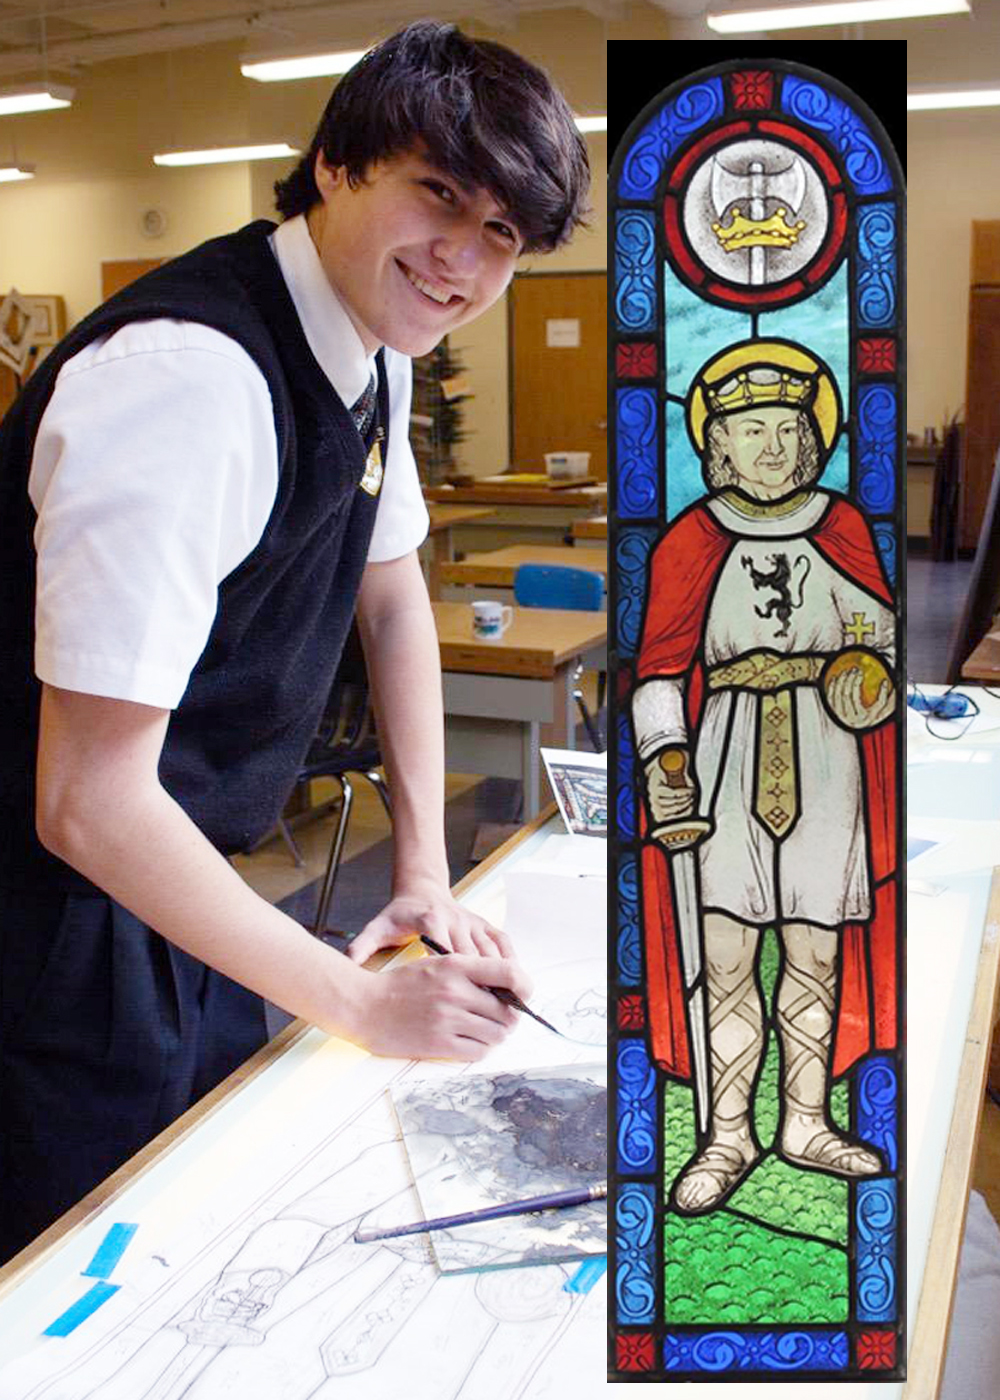 St. Anthony's High School freshman art student Matthew Meberg helped make a stained glass window that will be installed in the school's chapel.